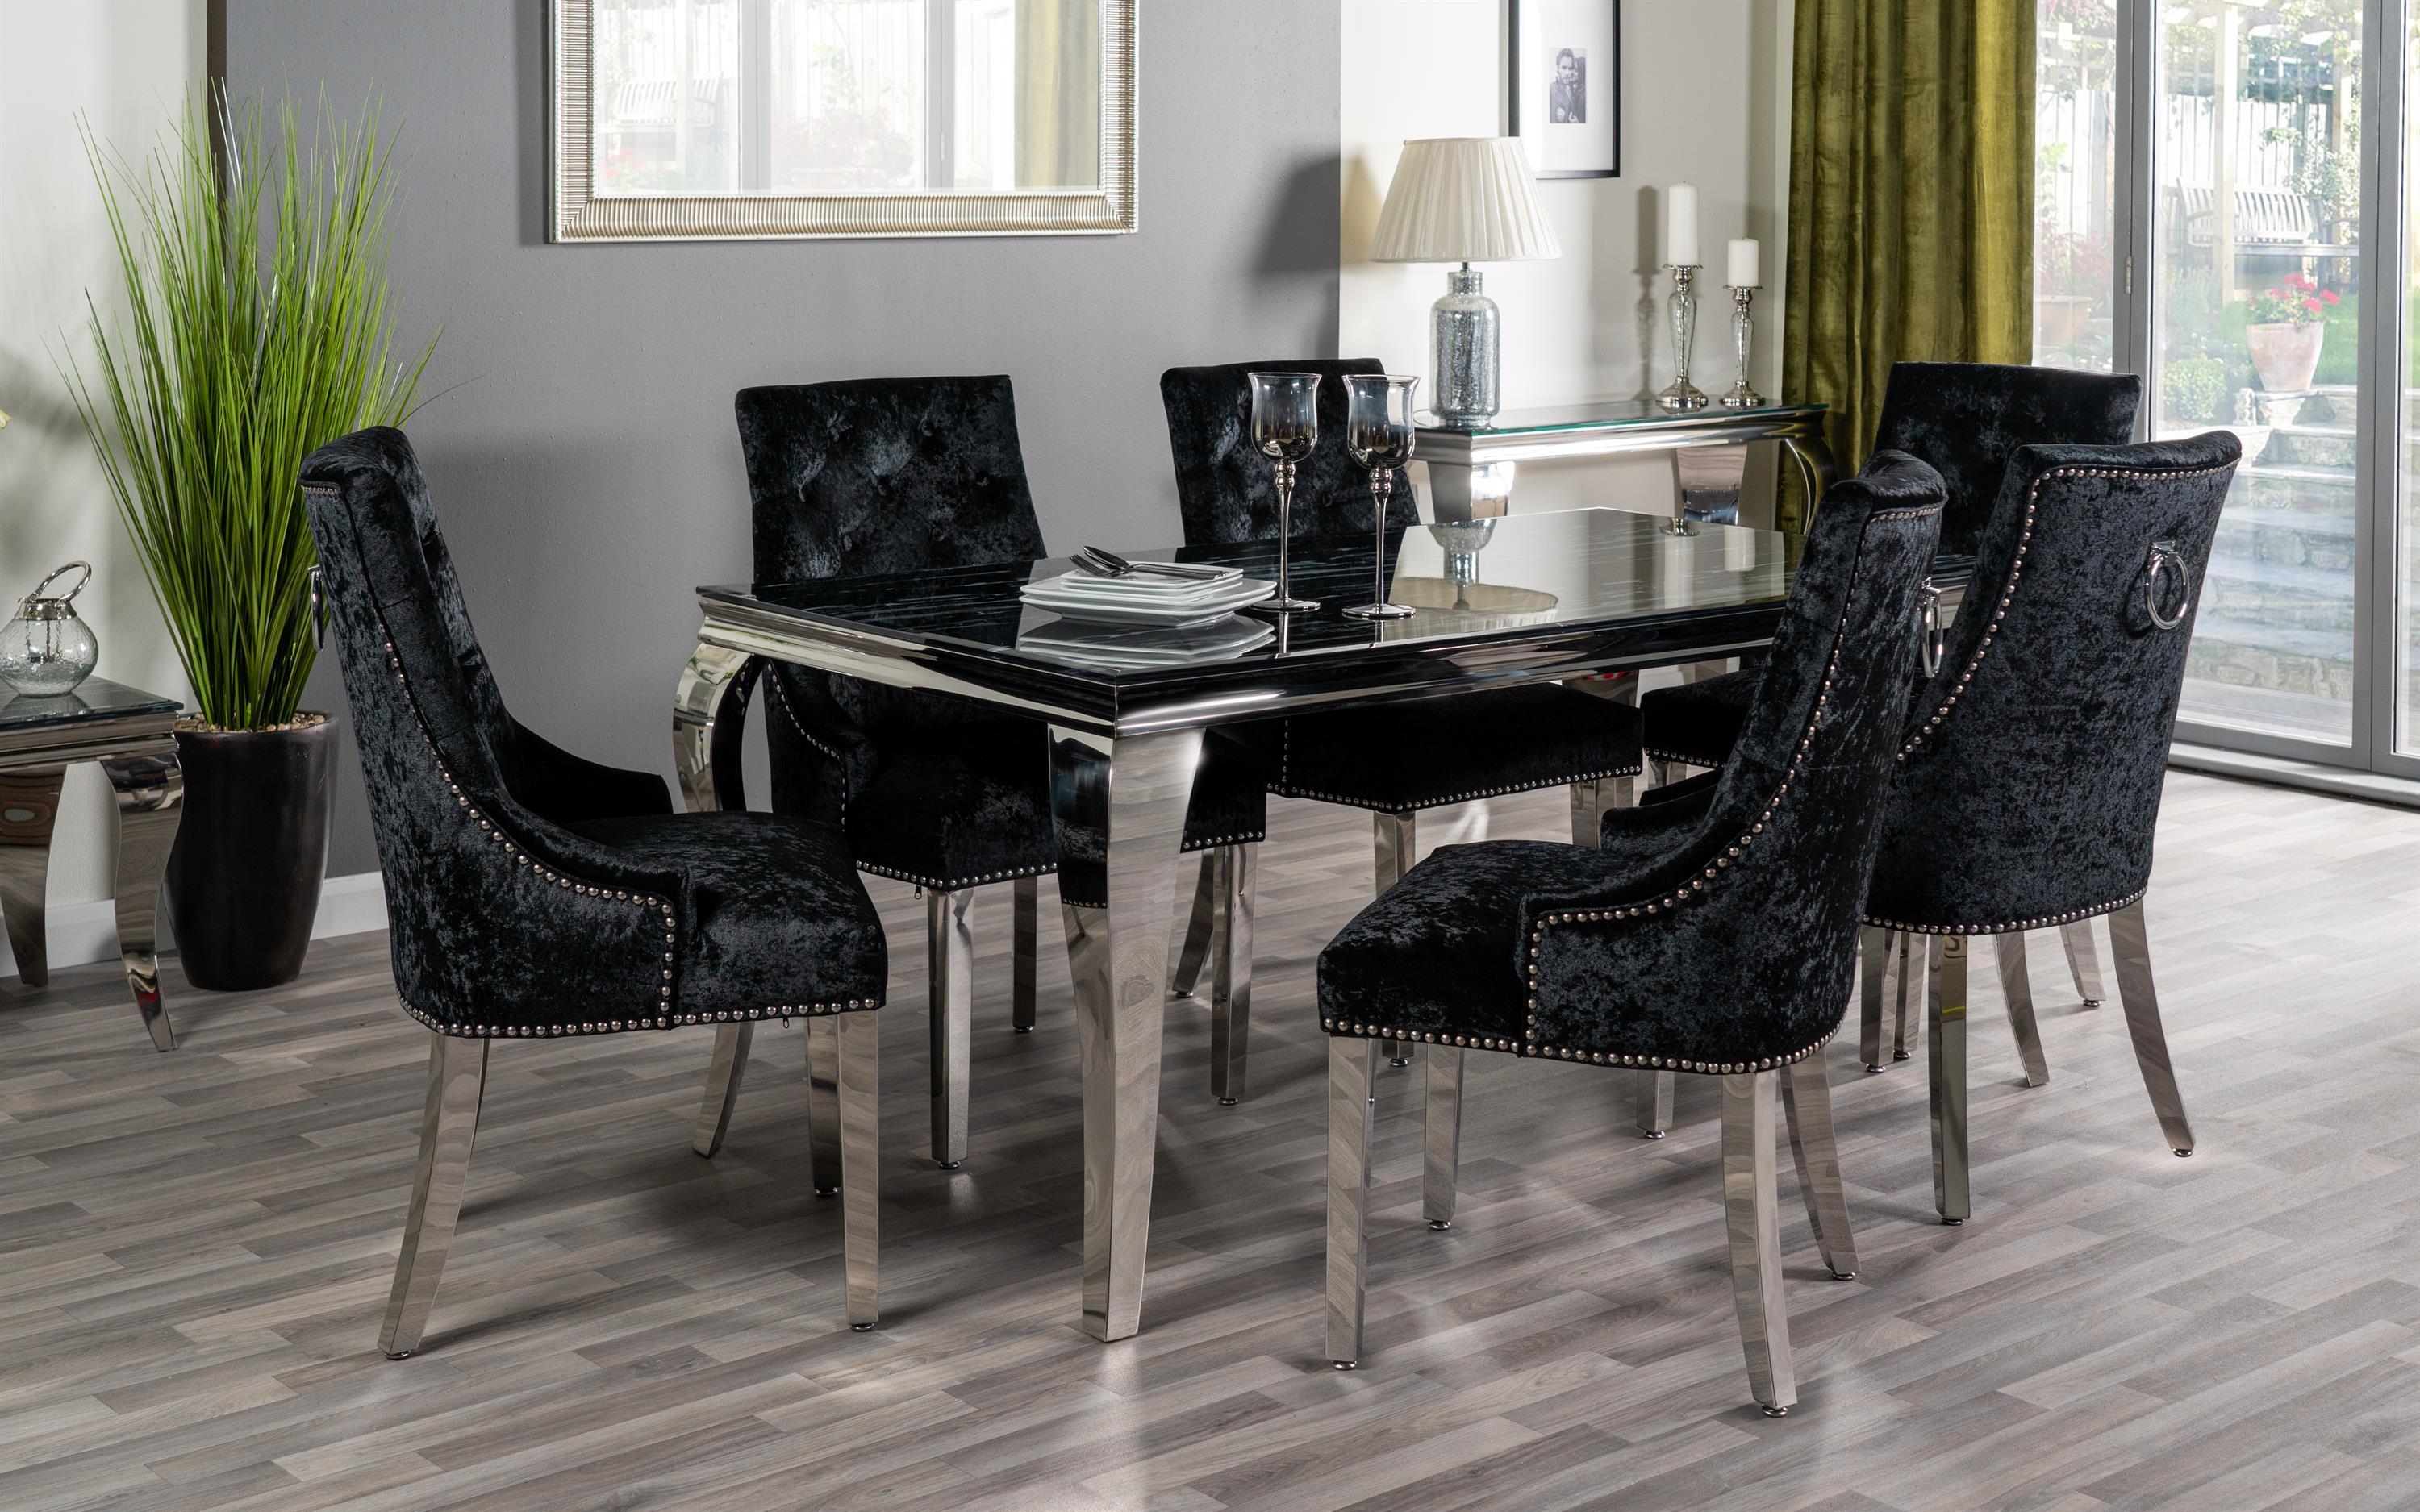 Paris Marble Effect Dining Table & 6 Black Chairs